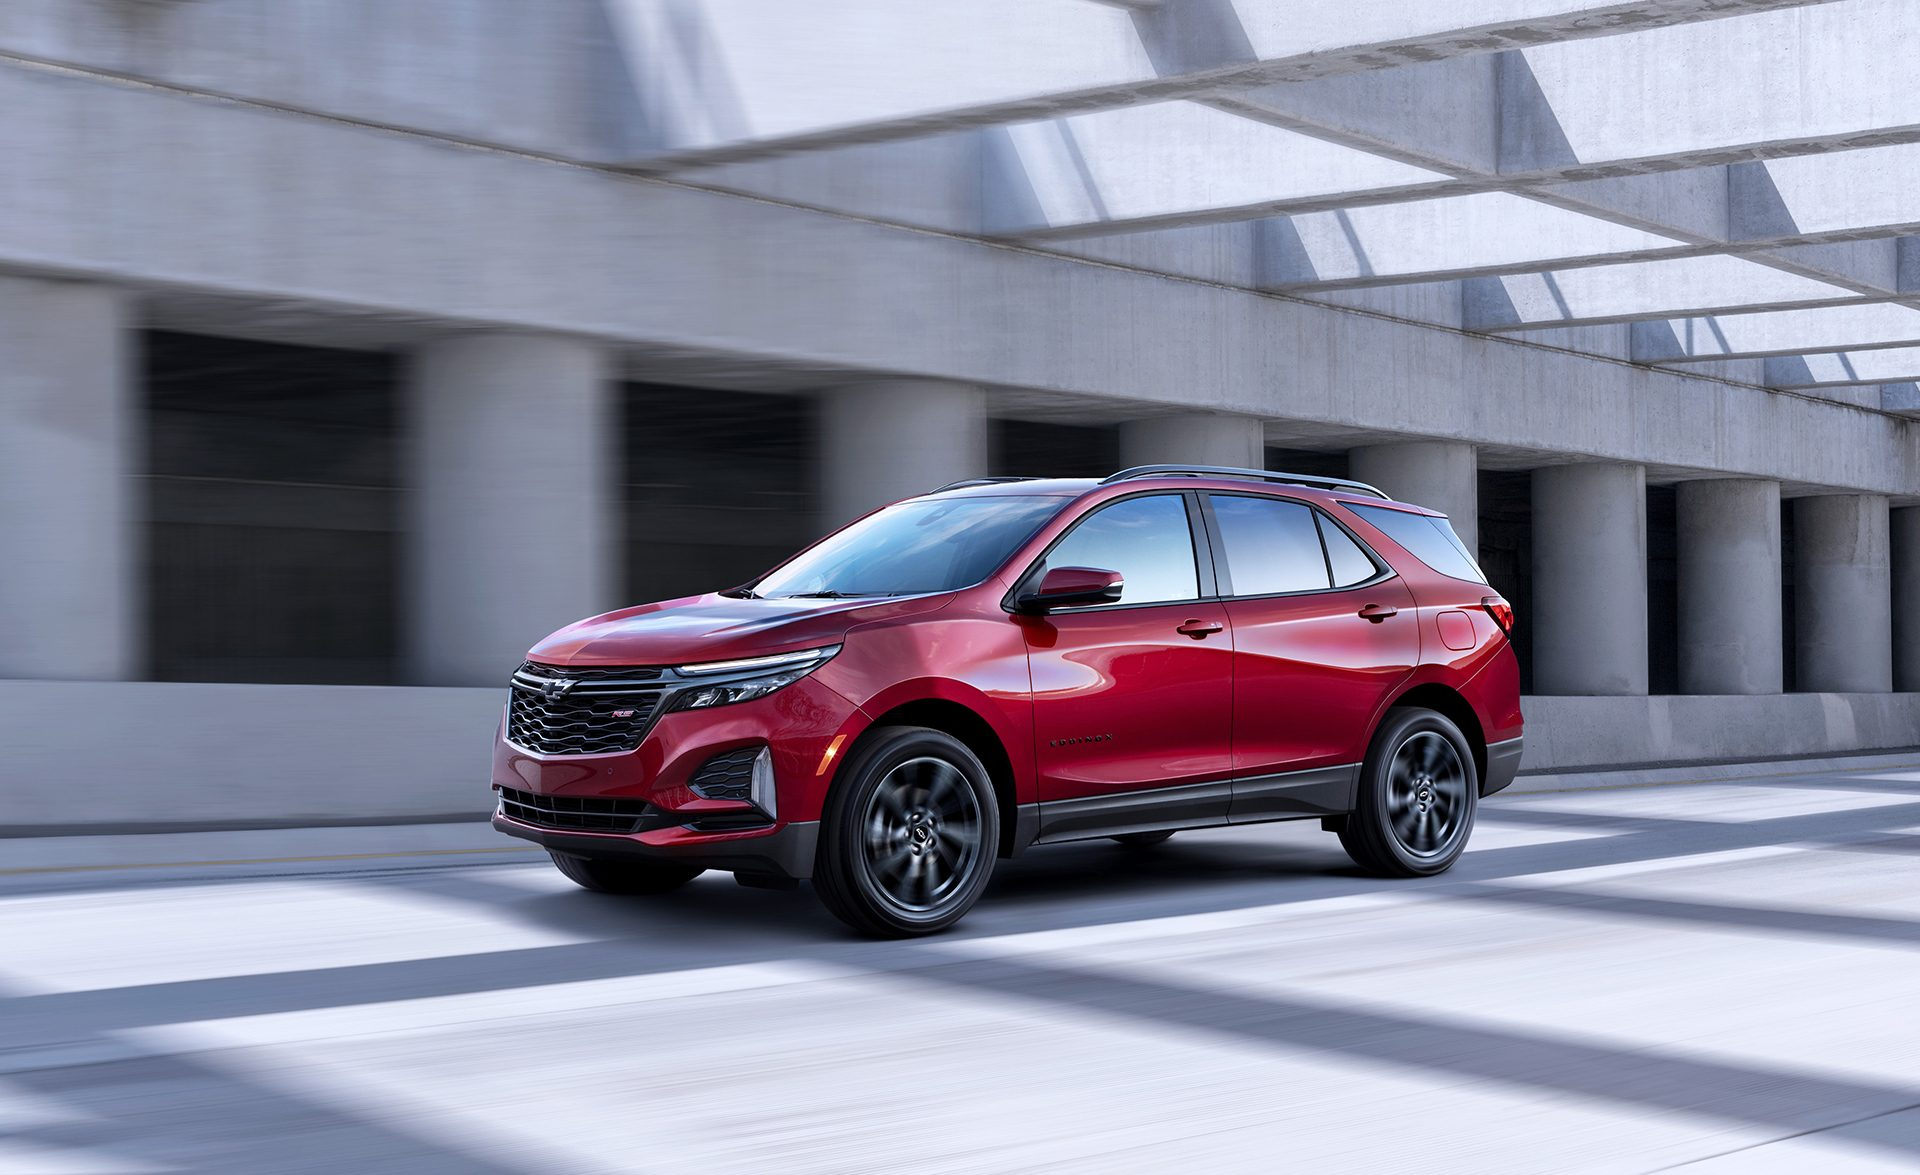 2021 Chevrolet Equinox Blazes A Familiar Styling Path 2021 Chevy Equinox Used, User Manual, Upgrades